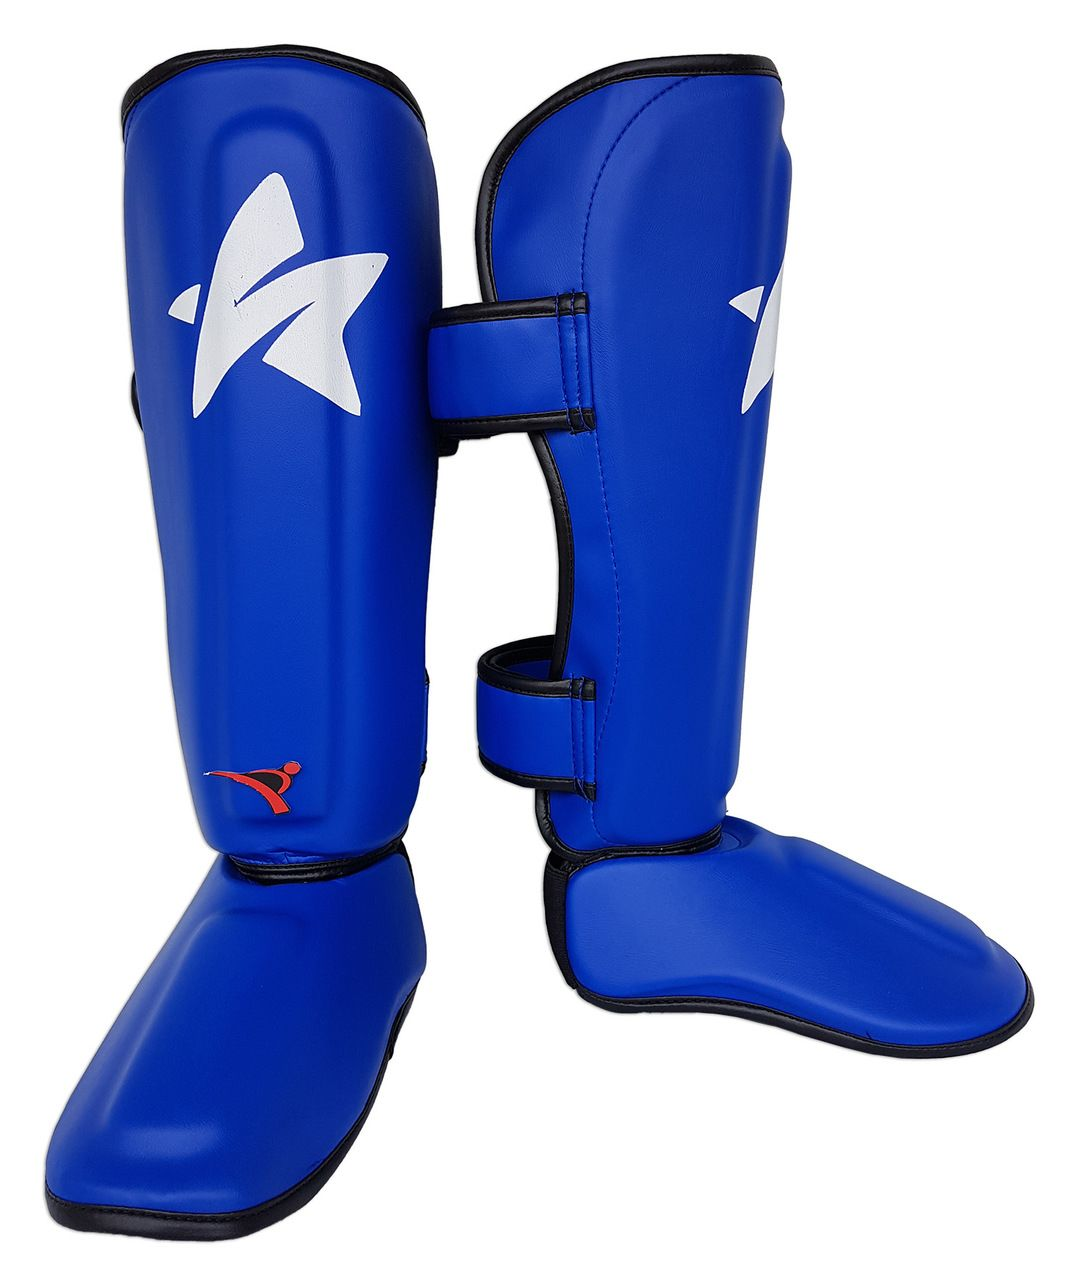 Caneleira Tradicional Muay Thai MMA Azul Ultra Light - SulSport  - PRALUTA SHOP